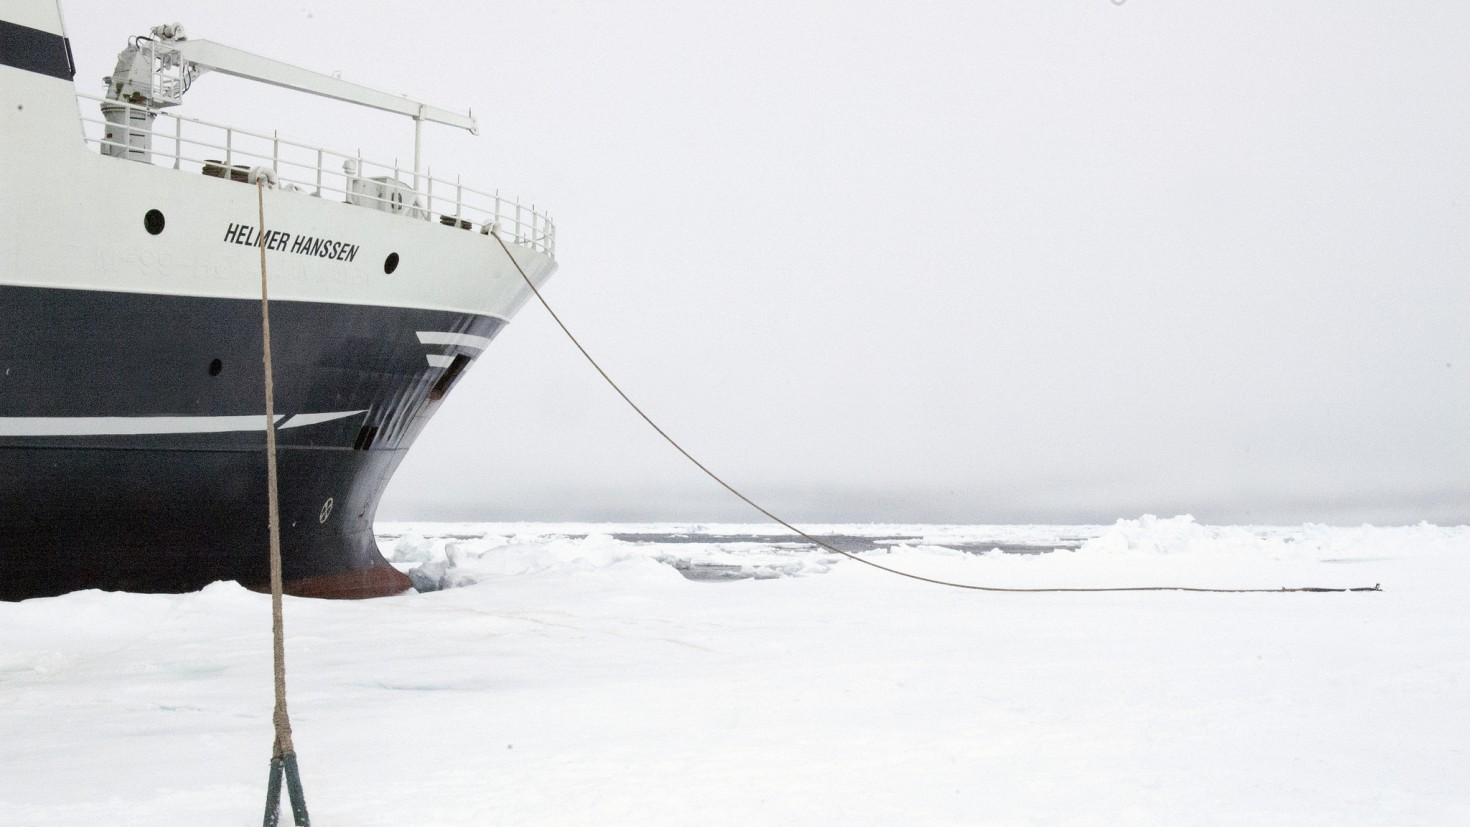 research vessel helmer hanssen moored to the ice edge. Photo: Karine Nigar Aarskog / UiT